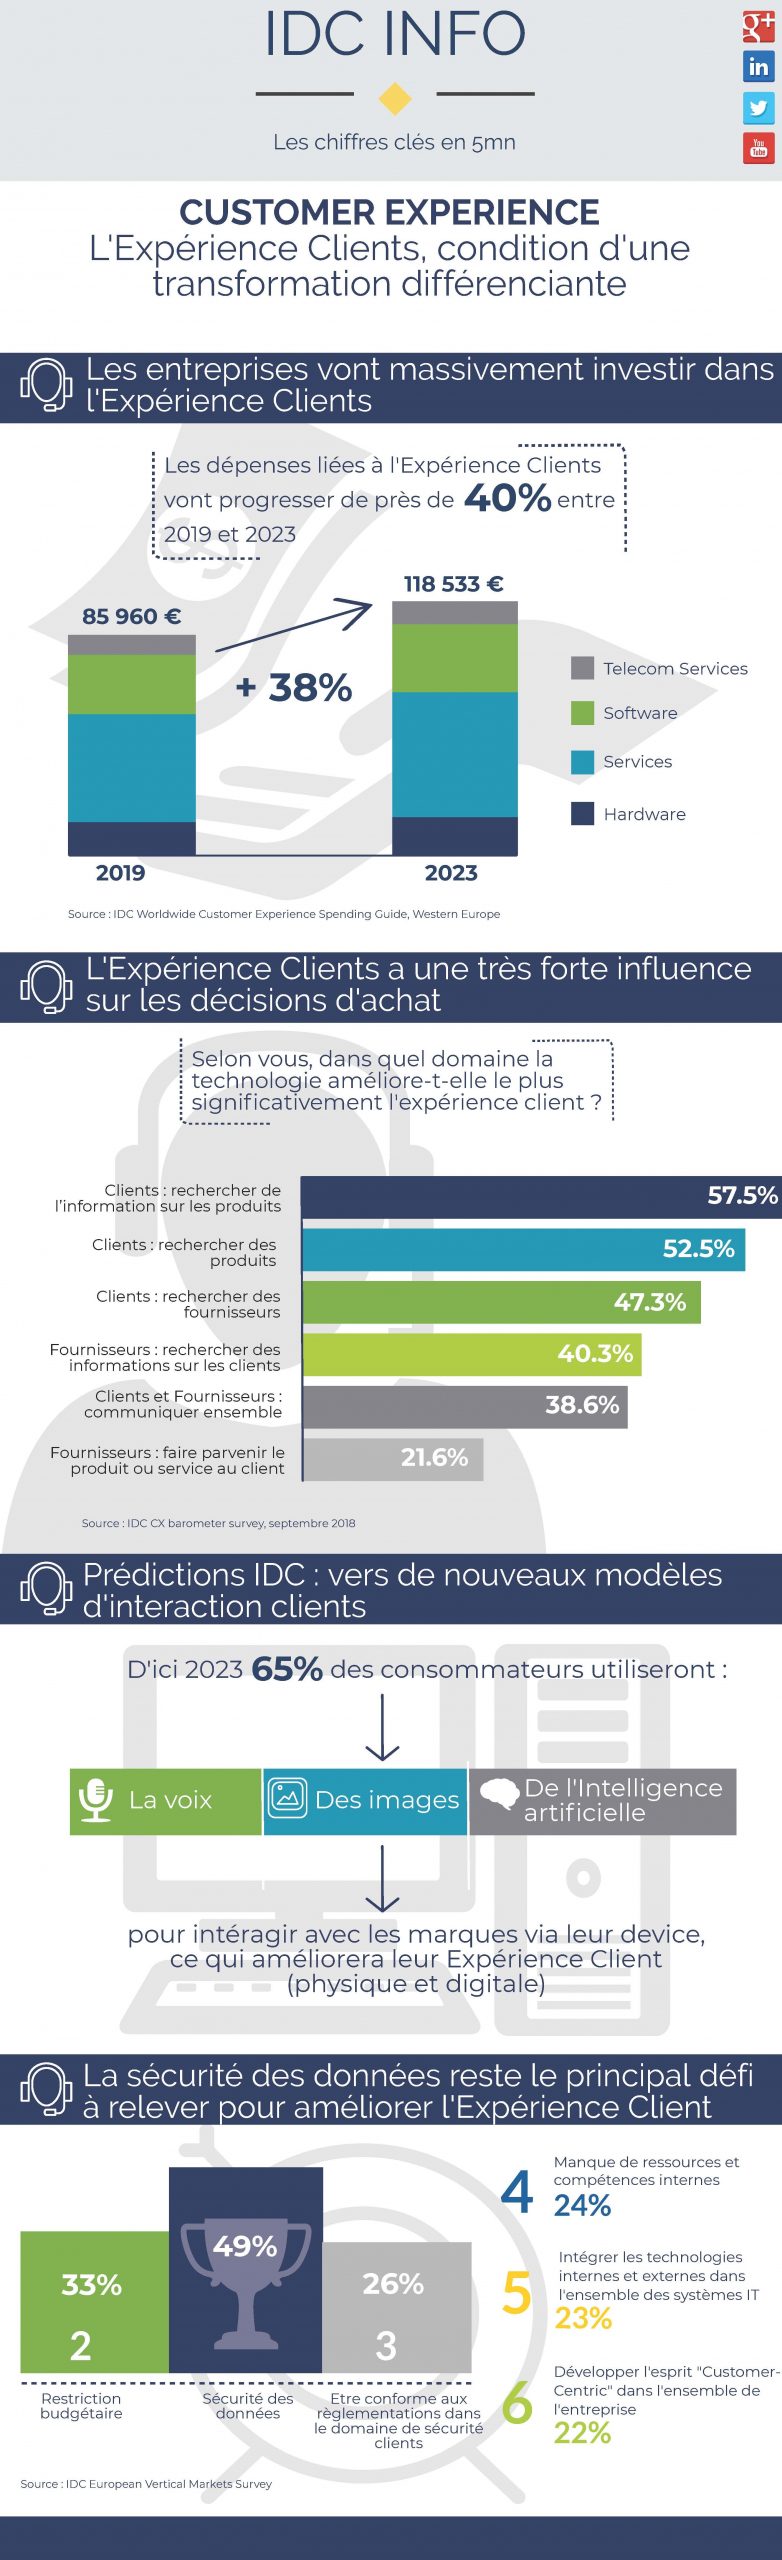 Infographie IDC Customer Experience